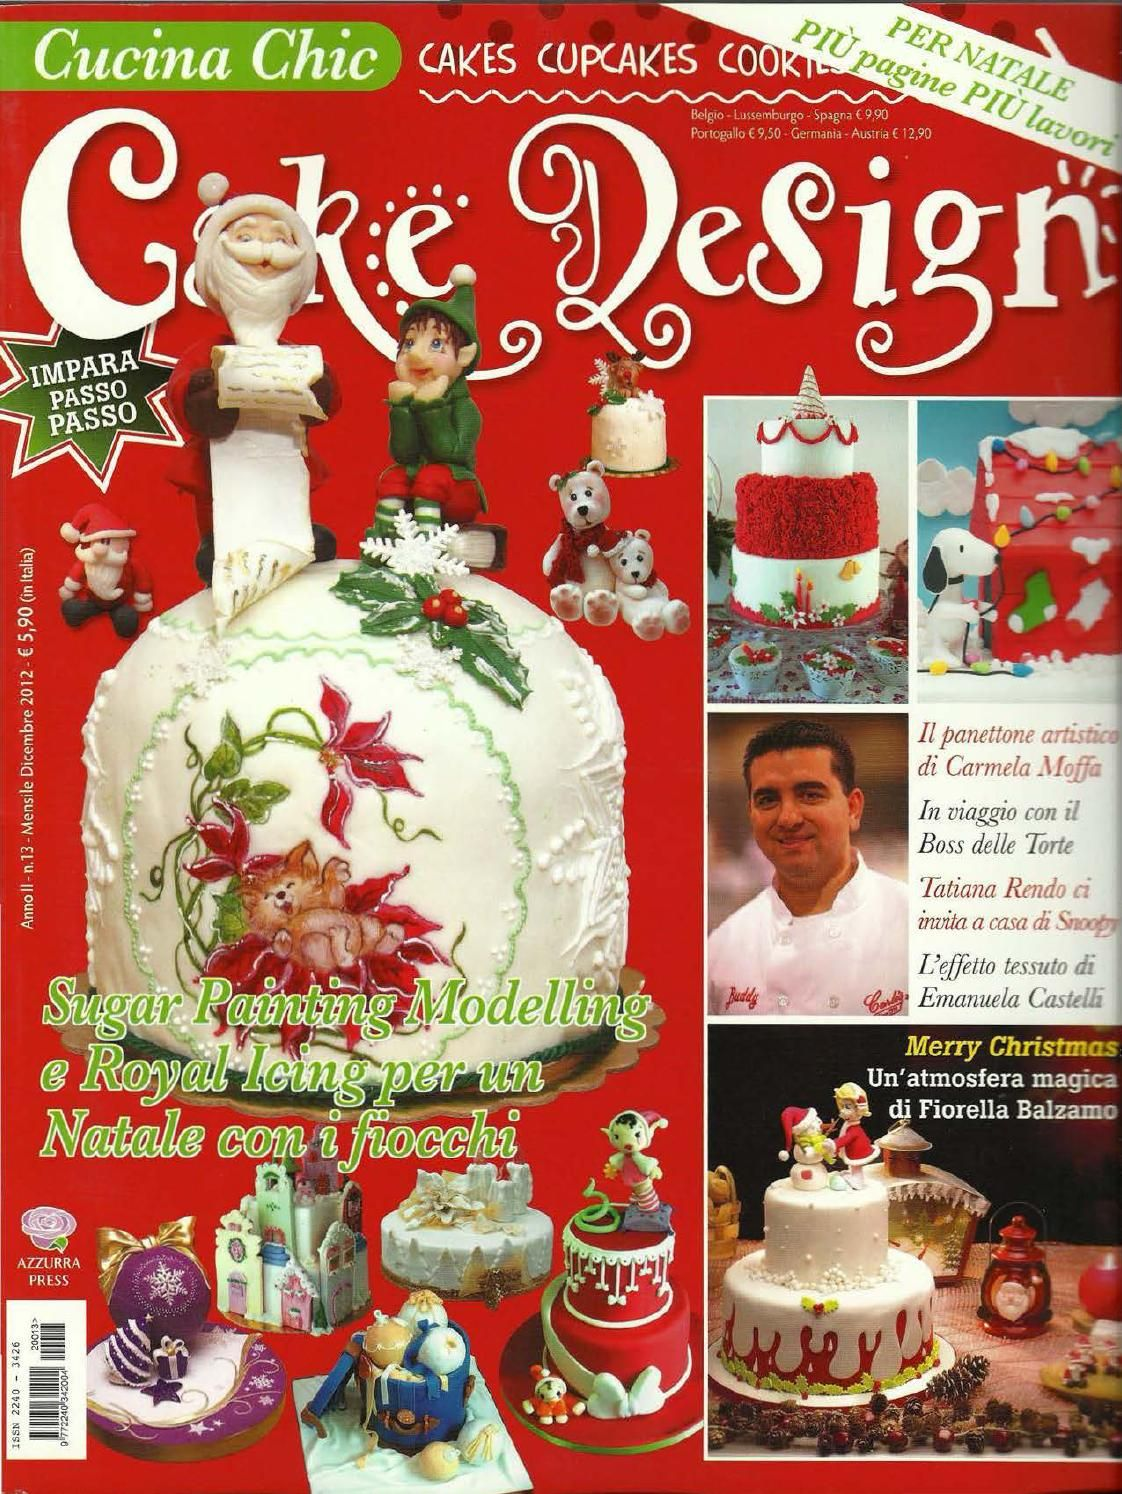 Cucina chic cake design 13 Balastro | MISC. (DROP OFF - TO ...